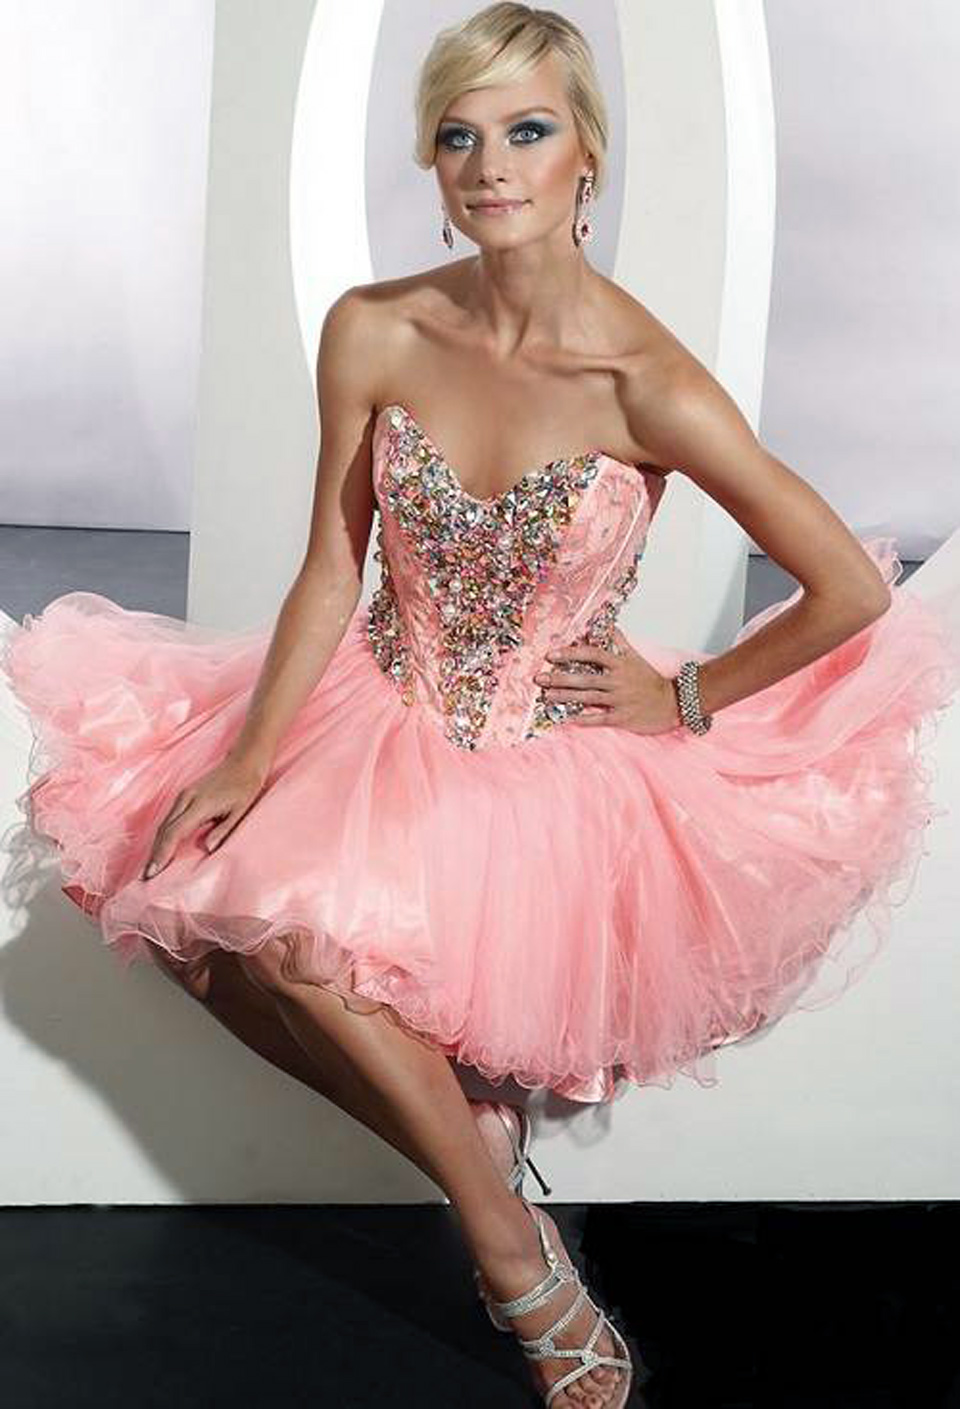 Ballerina Dresses For Women 2013